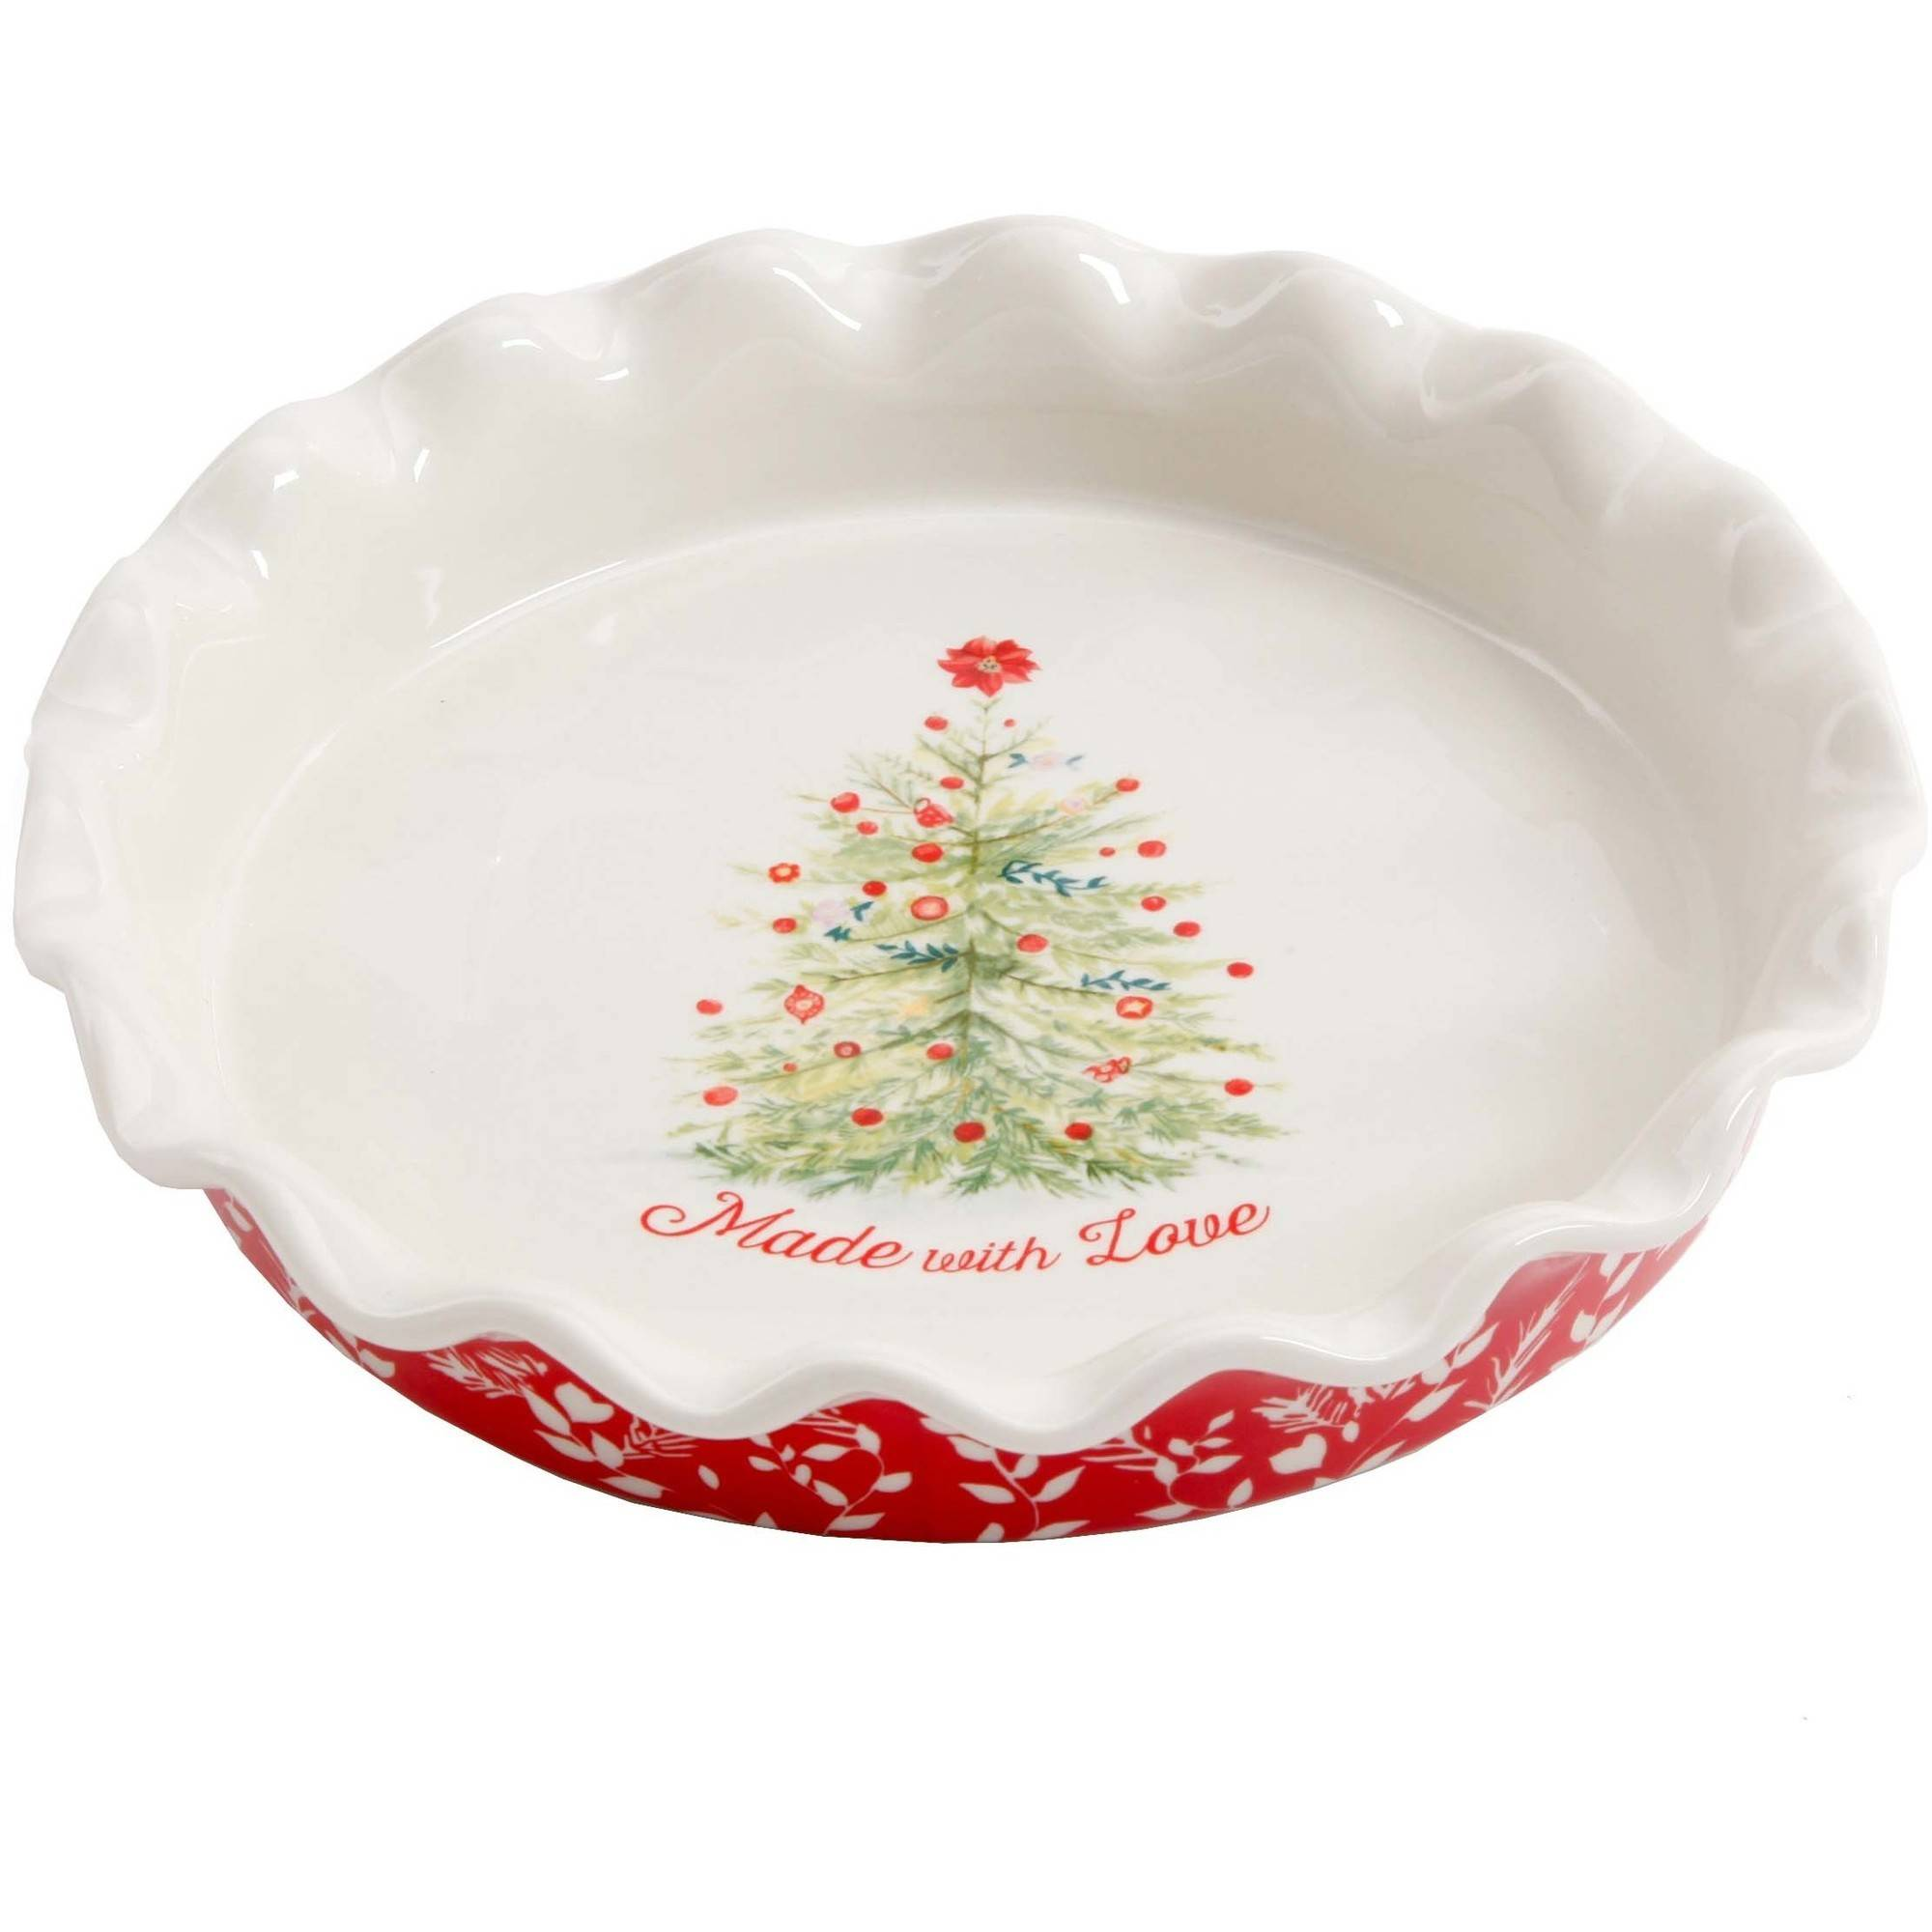 "The Pioneer Woman Holiday Cheer 9"" Ruffle-Top Pie Plate"